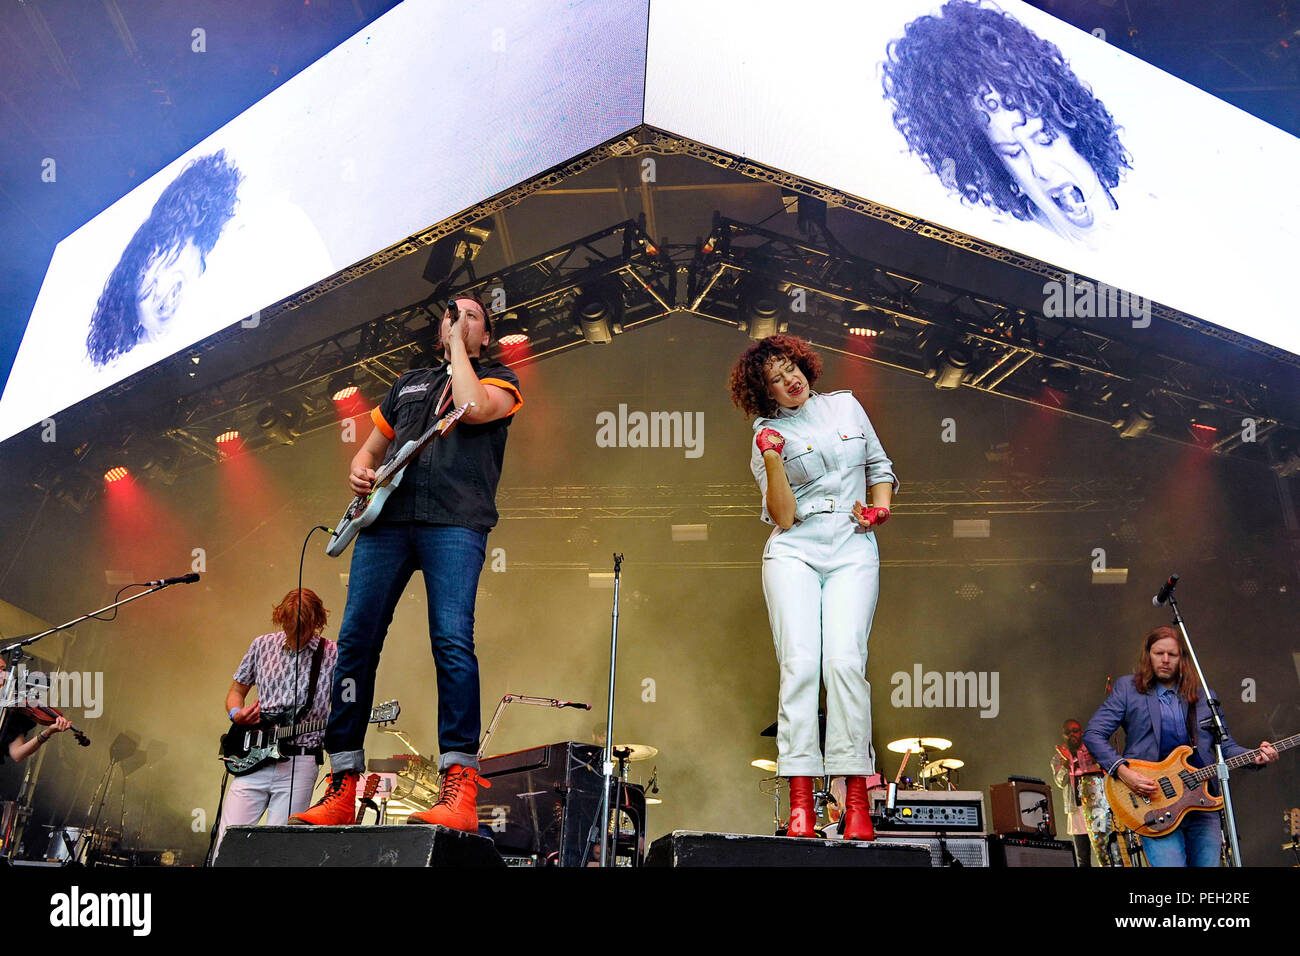 Berlin, Deutschland. 13th Aug, 2018. Richard Parry, Win Butler, Regine Chassagne and Tim Kingsbury of Arcade Fire live at the Citadel Music Festival on the Spandau Citadel. Berlin, 13.08.2018 | usage worldwide Credit: dpa/Alamy Live News - Stock Image